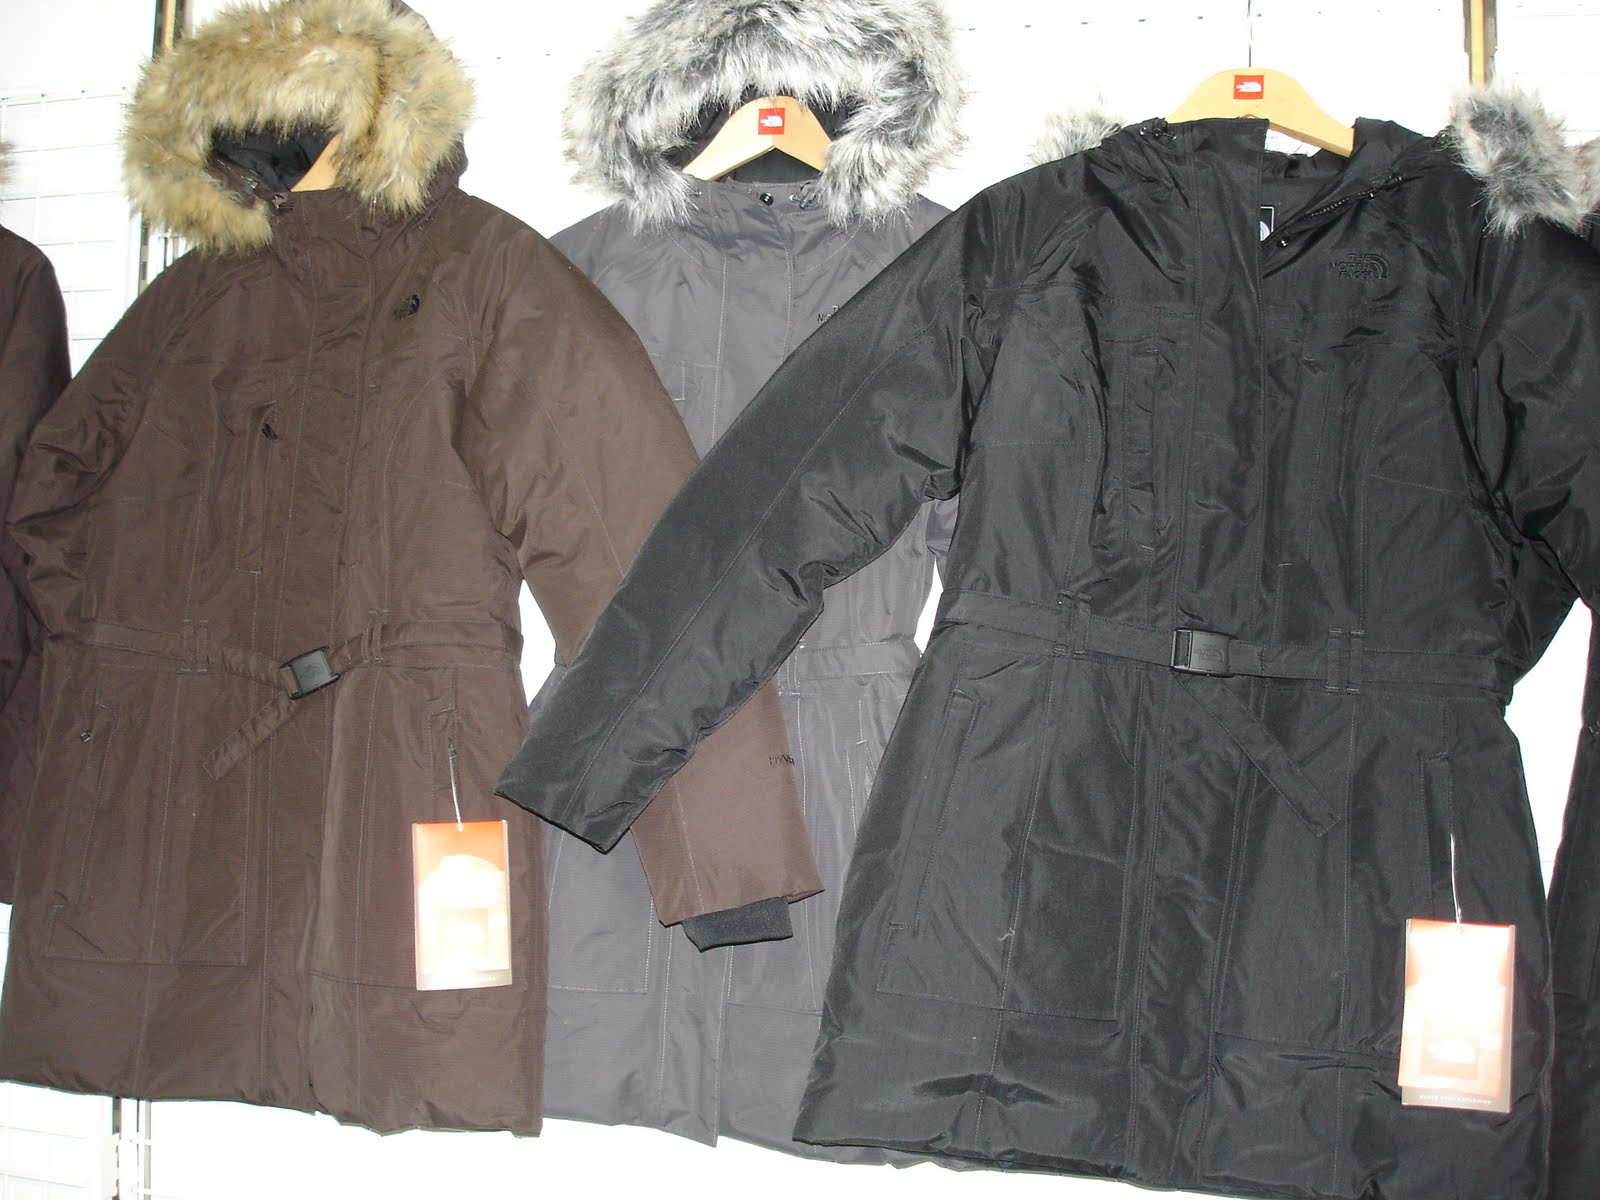 54ad7c305f8 Sneak Peak Preview #6: The North Face Women's Brooklyn Jacket and Upper  West Side Jacket